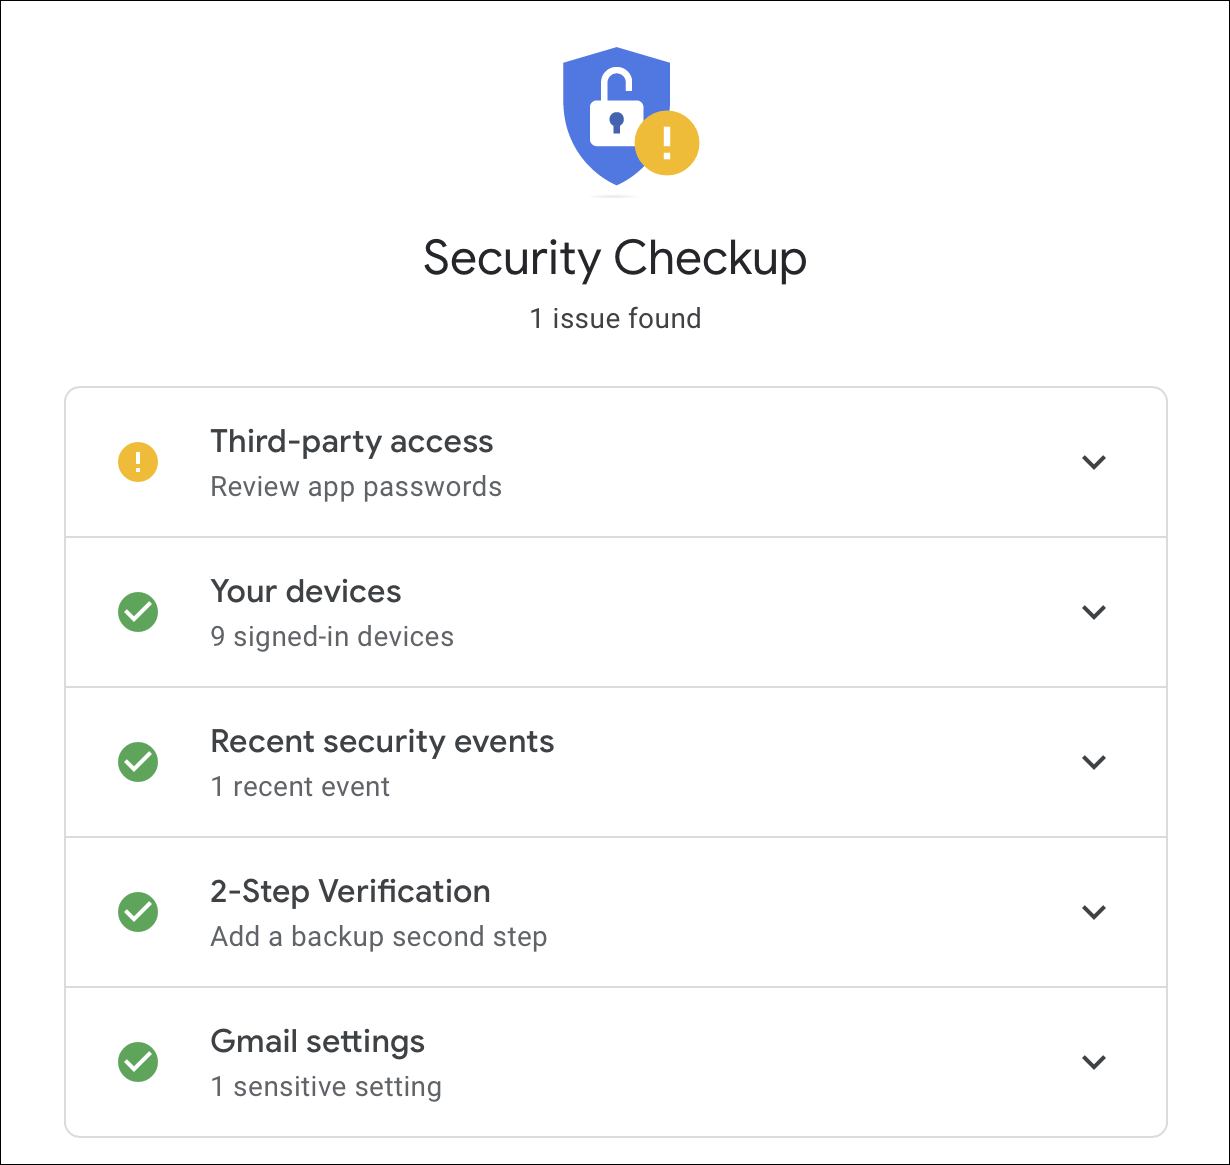 How To Manage Gmail And Security And Privacy